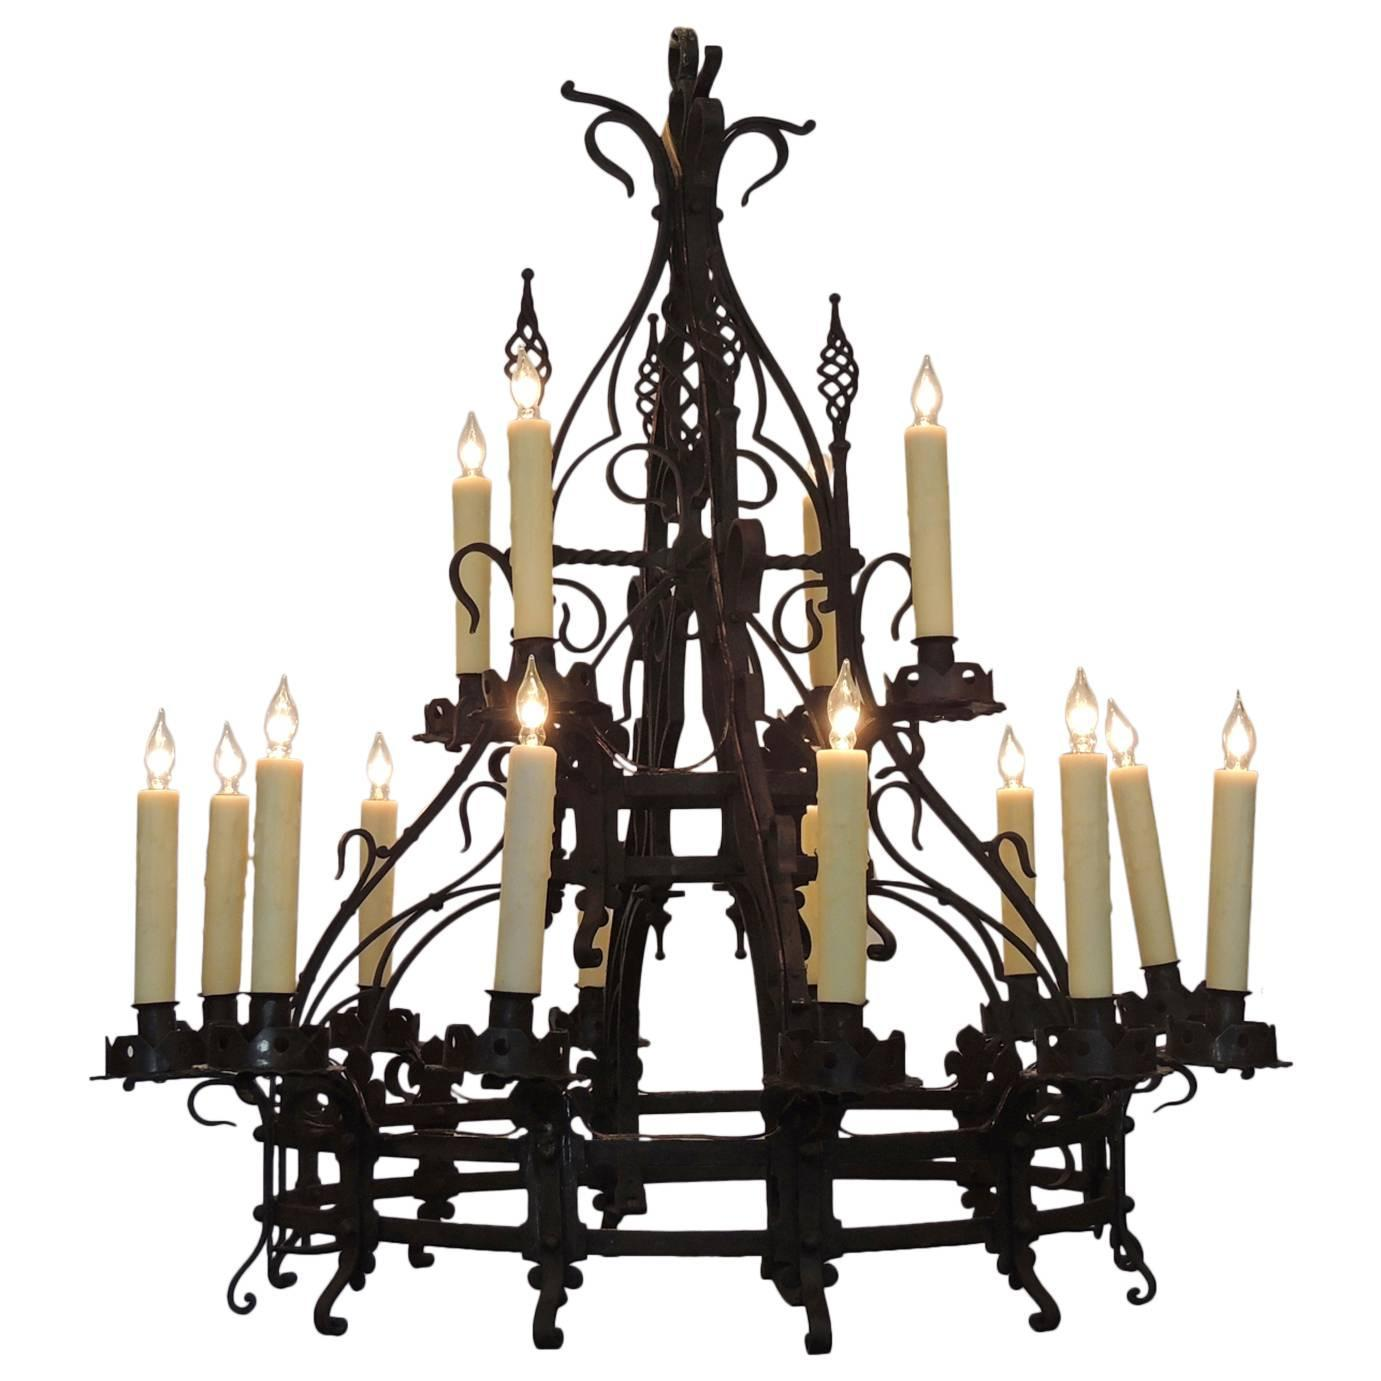 Late 19th c french gothic wrought iron chandelier for sale at 1stdibs arubaitofo Gallery